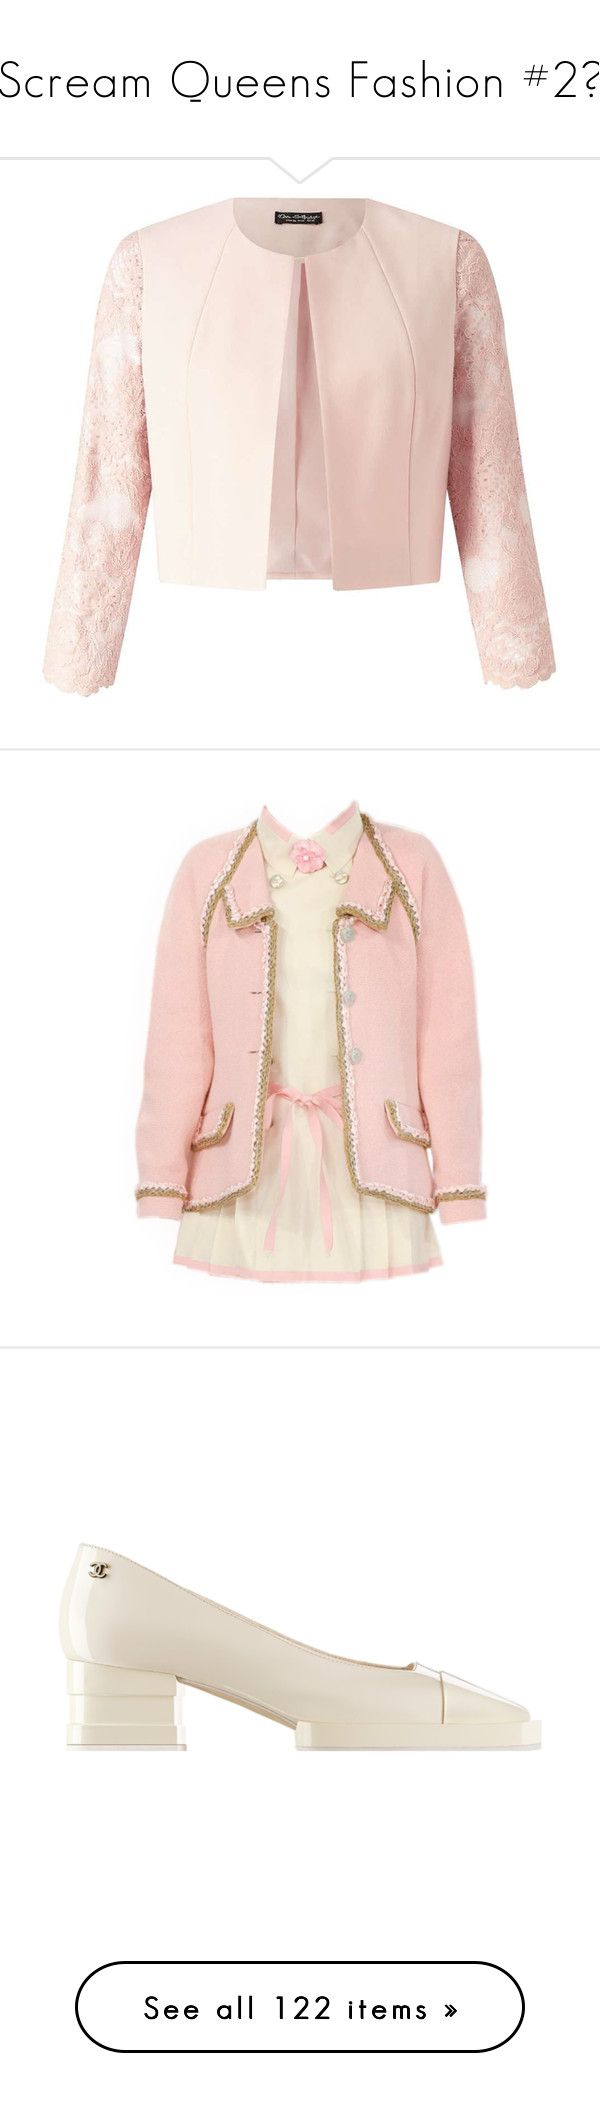 """""""Scream Queens Fashion #2♡"""" by kaylalovesowls ❤ liked on Polyvore featuring outerwear, jackets, blush, lace jacket, pink jacket, pink lace jacket, miss selfridge, dresses, chanel and chanel dresses"""